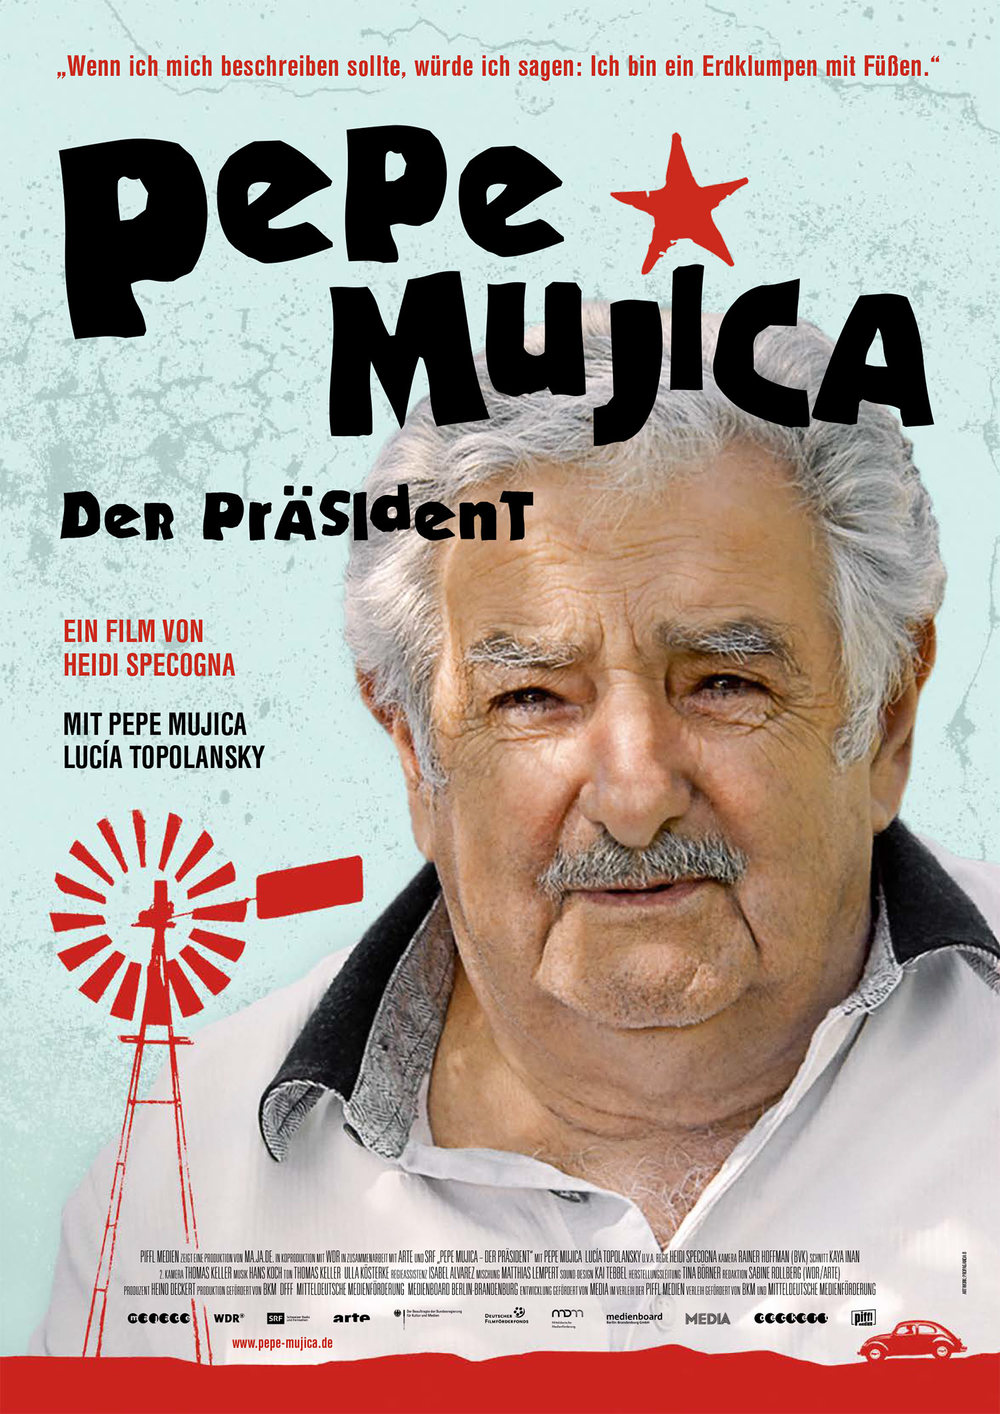 "Piffl Medien<a href=""/pepe-mujica"">→</a><strong>Kreation</strong>"